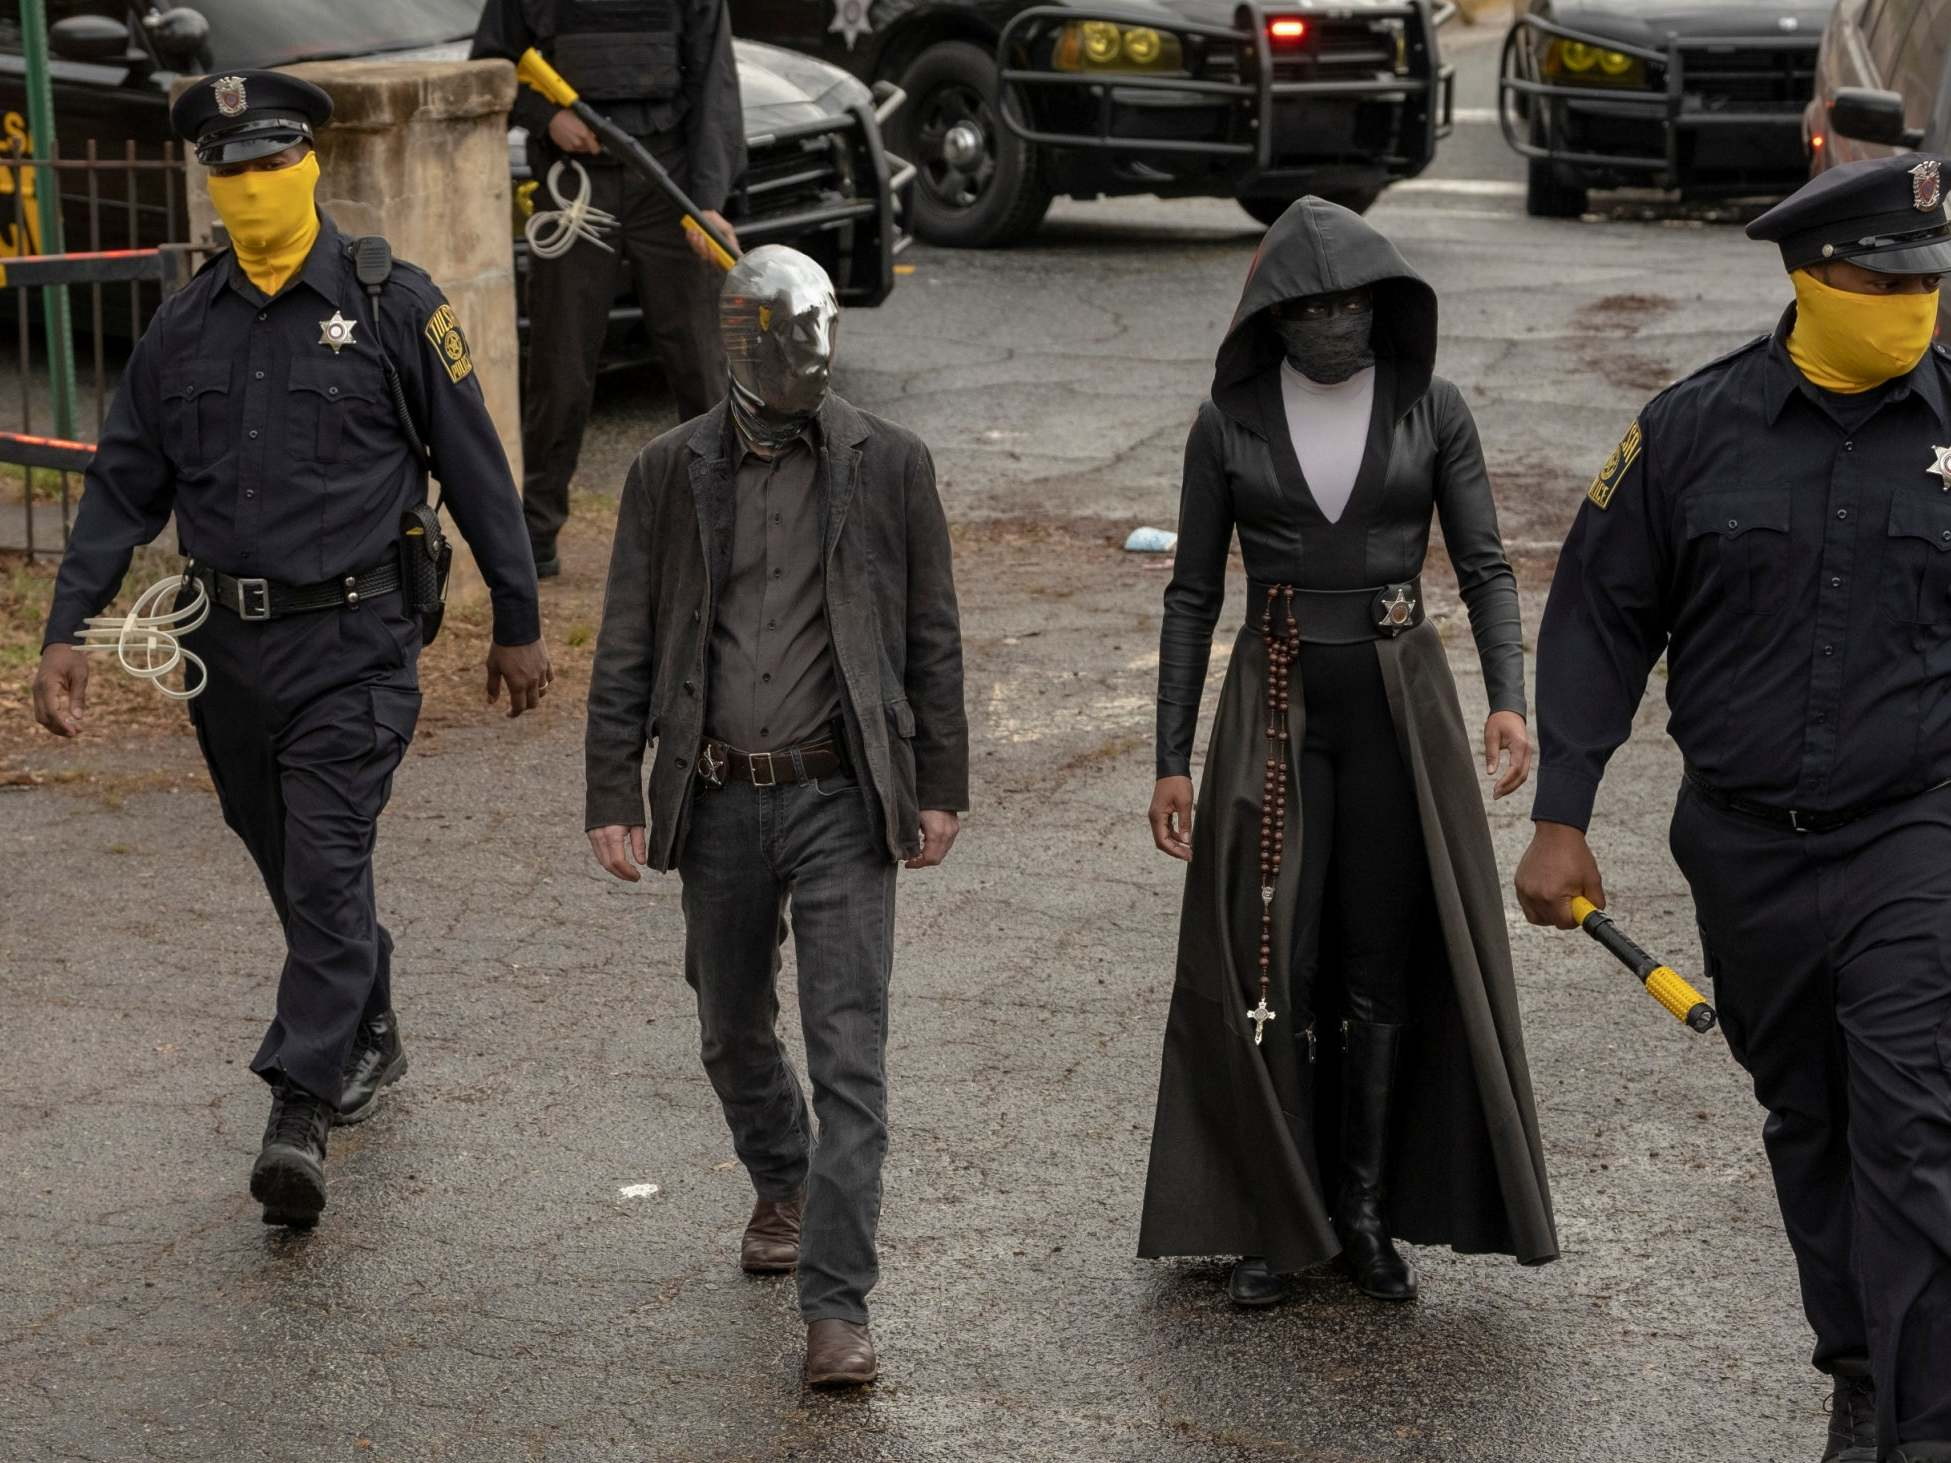 Watchmen review: One of the most unusual explorations of the superhero concept on television